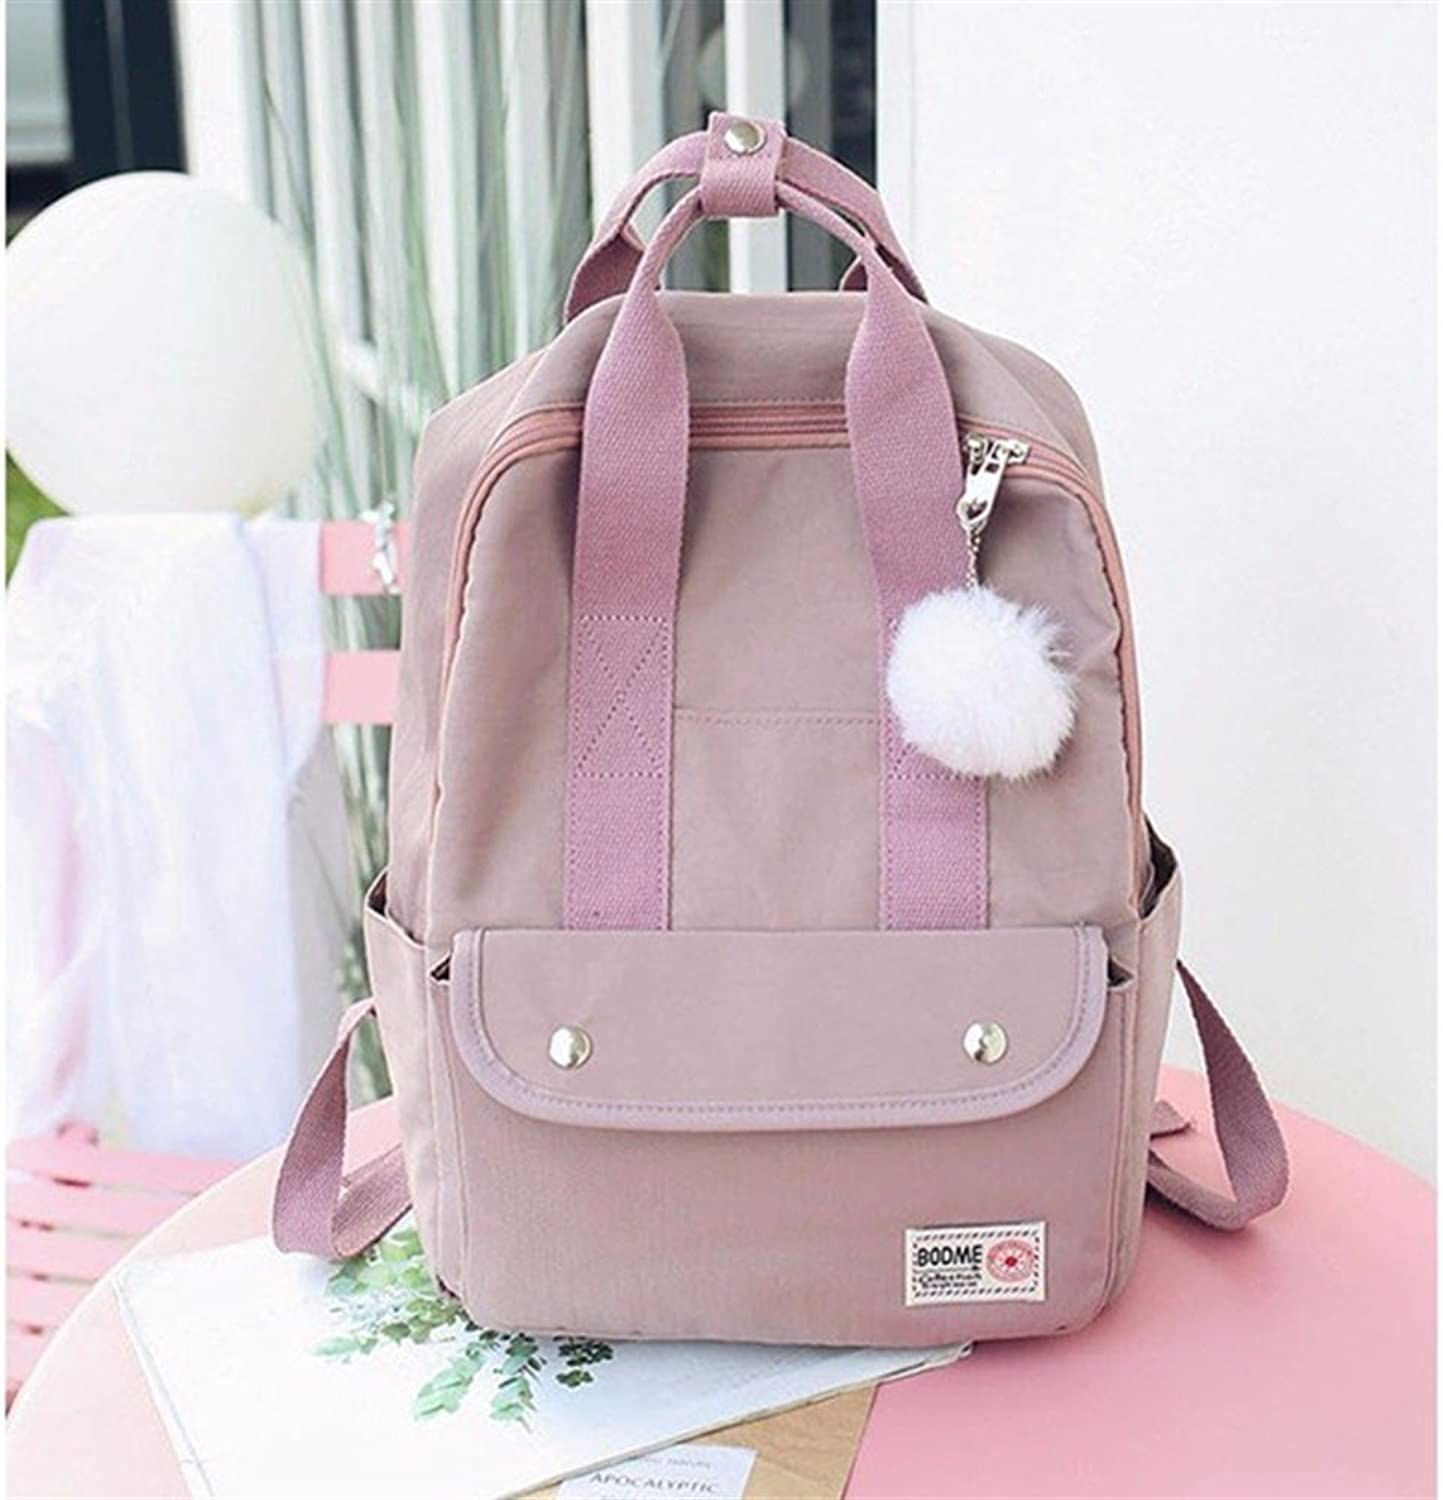 Leng QL Personality Backpacks Fashion Canvas Rucksack Student Laptop Schoolbag Leisure Backpack